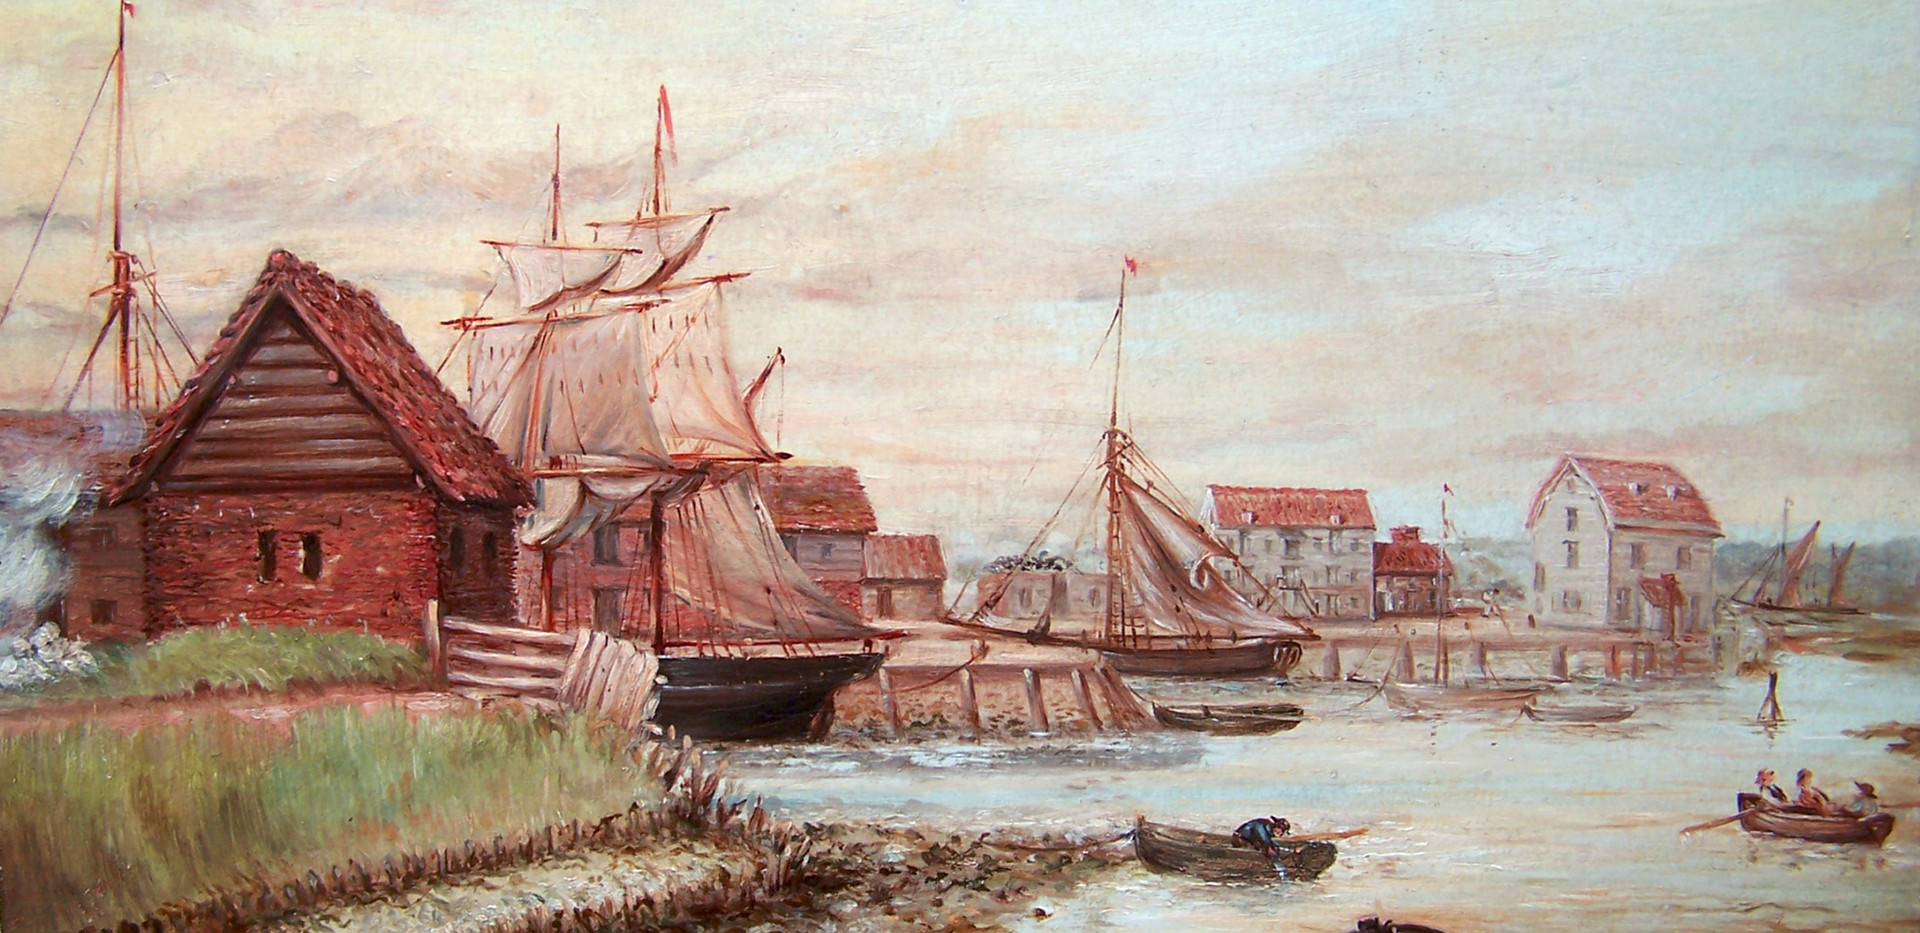 Woodbridge, with Tide Mill 1890 Oil painting by Charles Kell